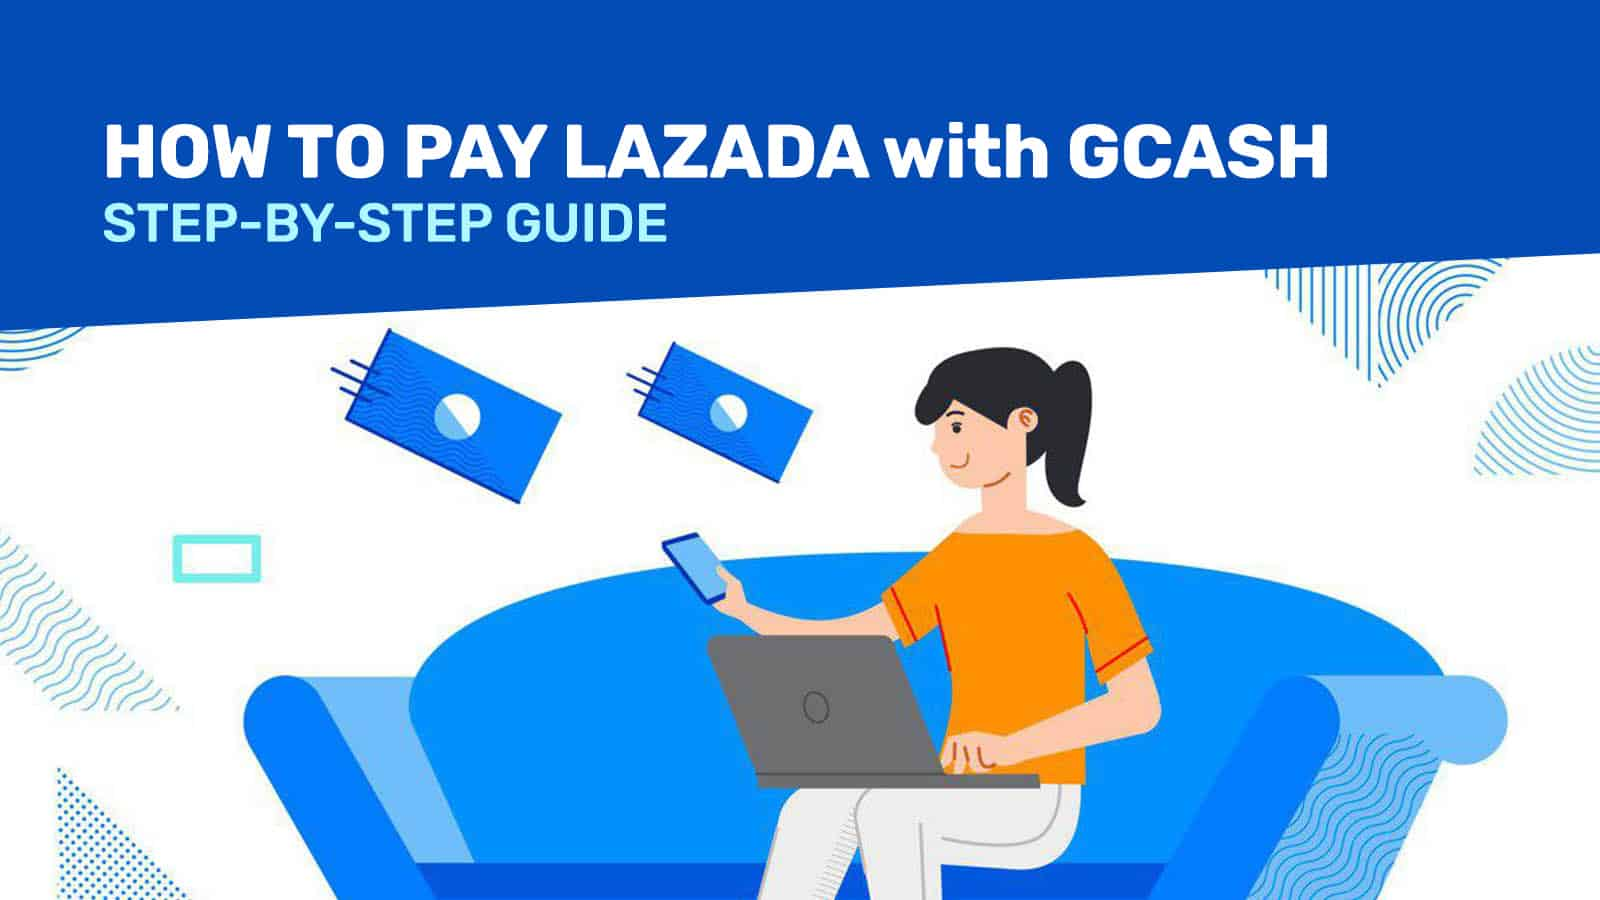 LAZADA SHOPPING: How to Pay with GCash (Step-by-Step Guide)